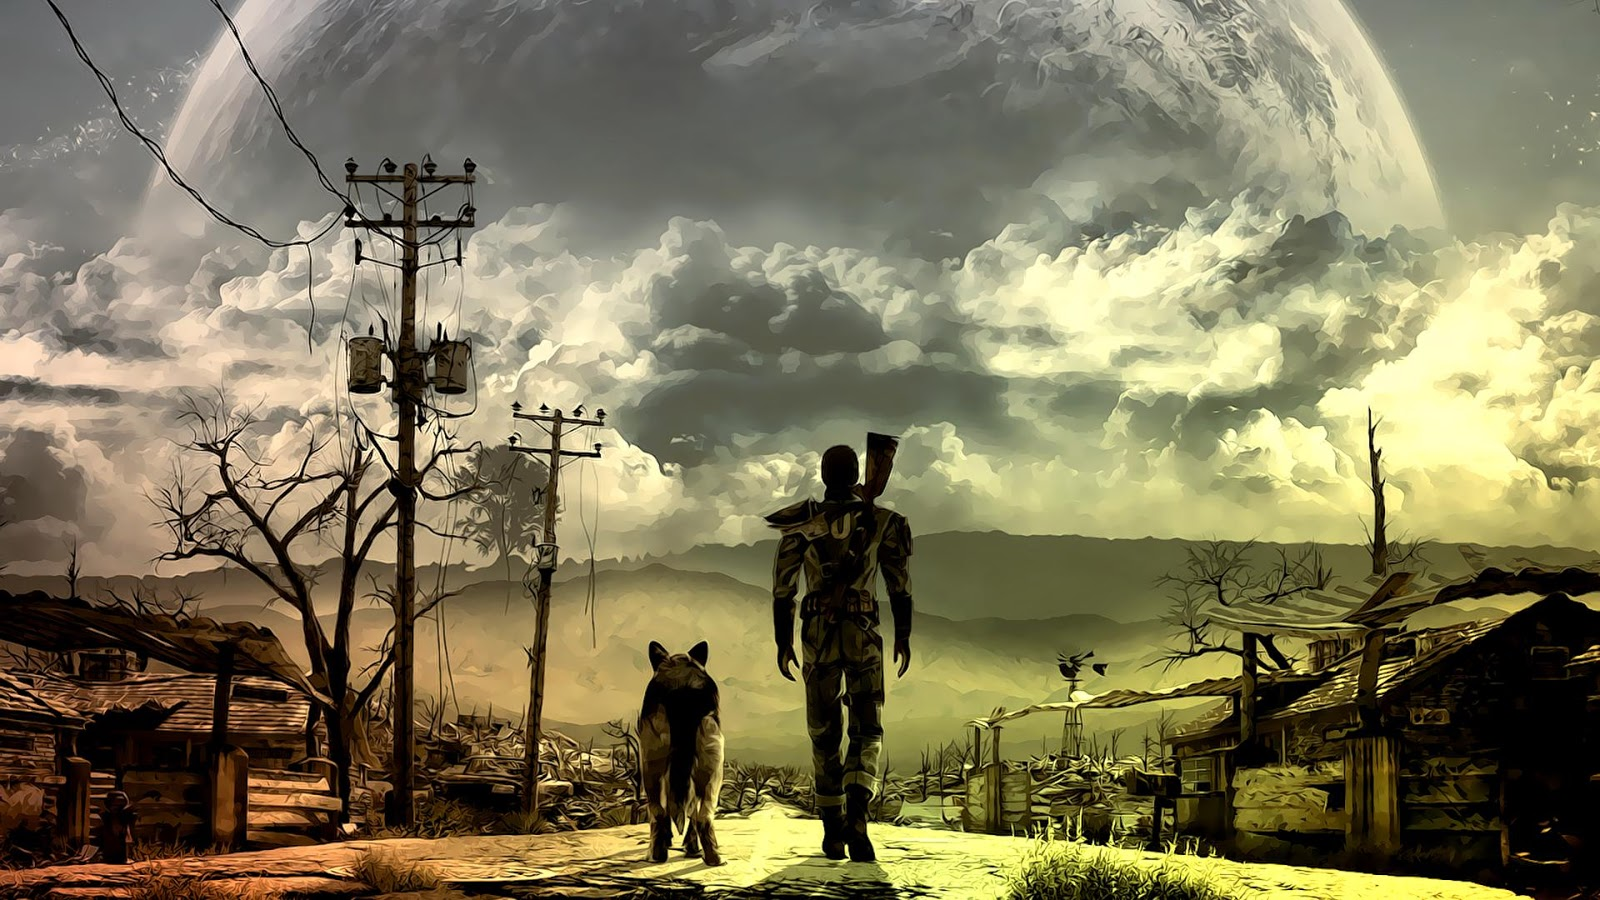 Gaming blog fallout game story background part 1